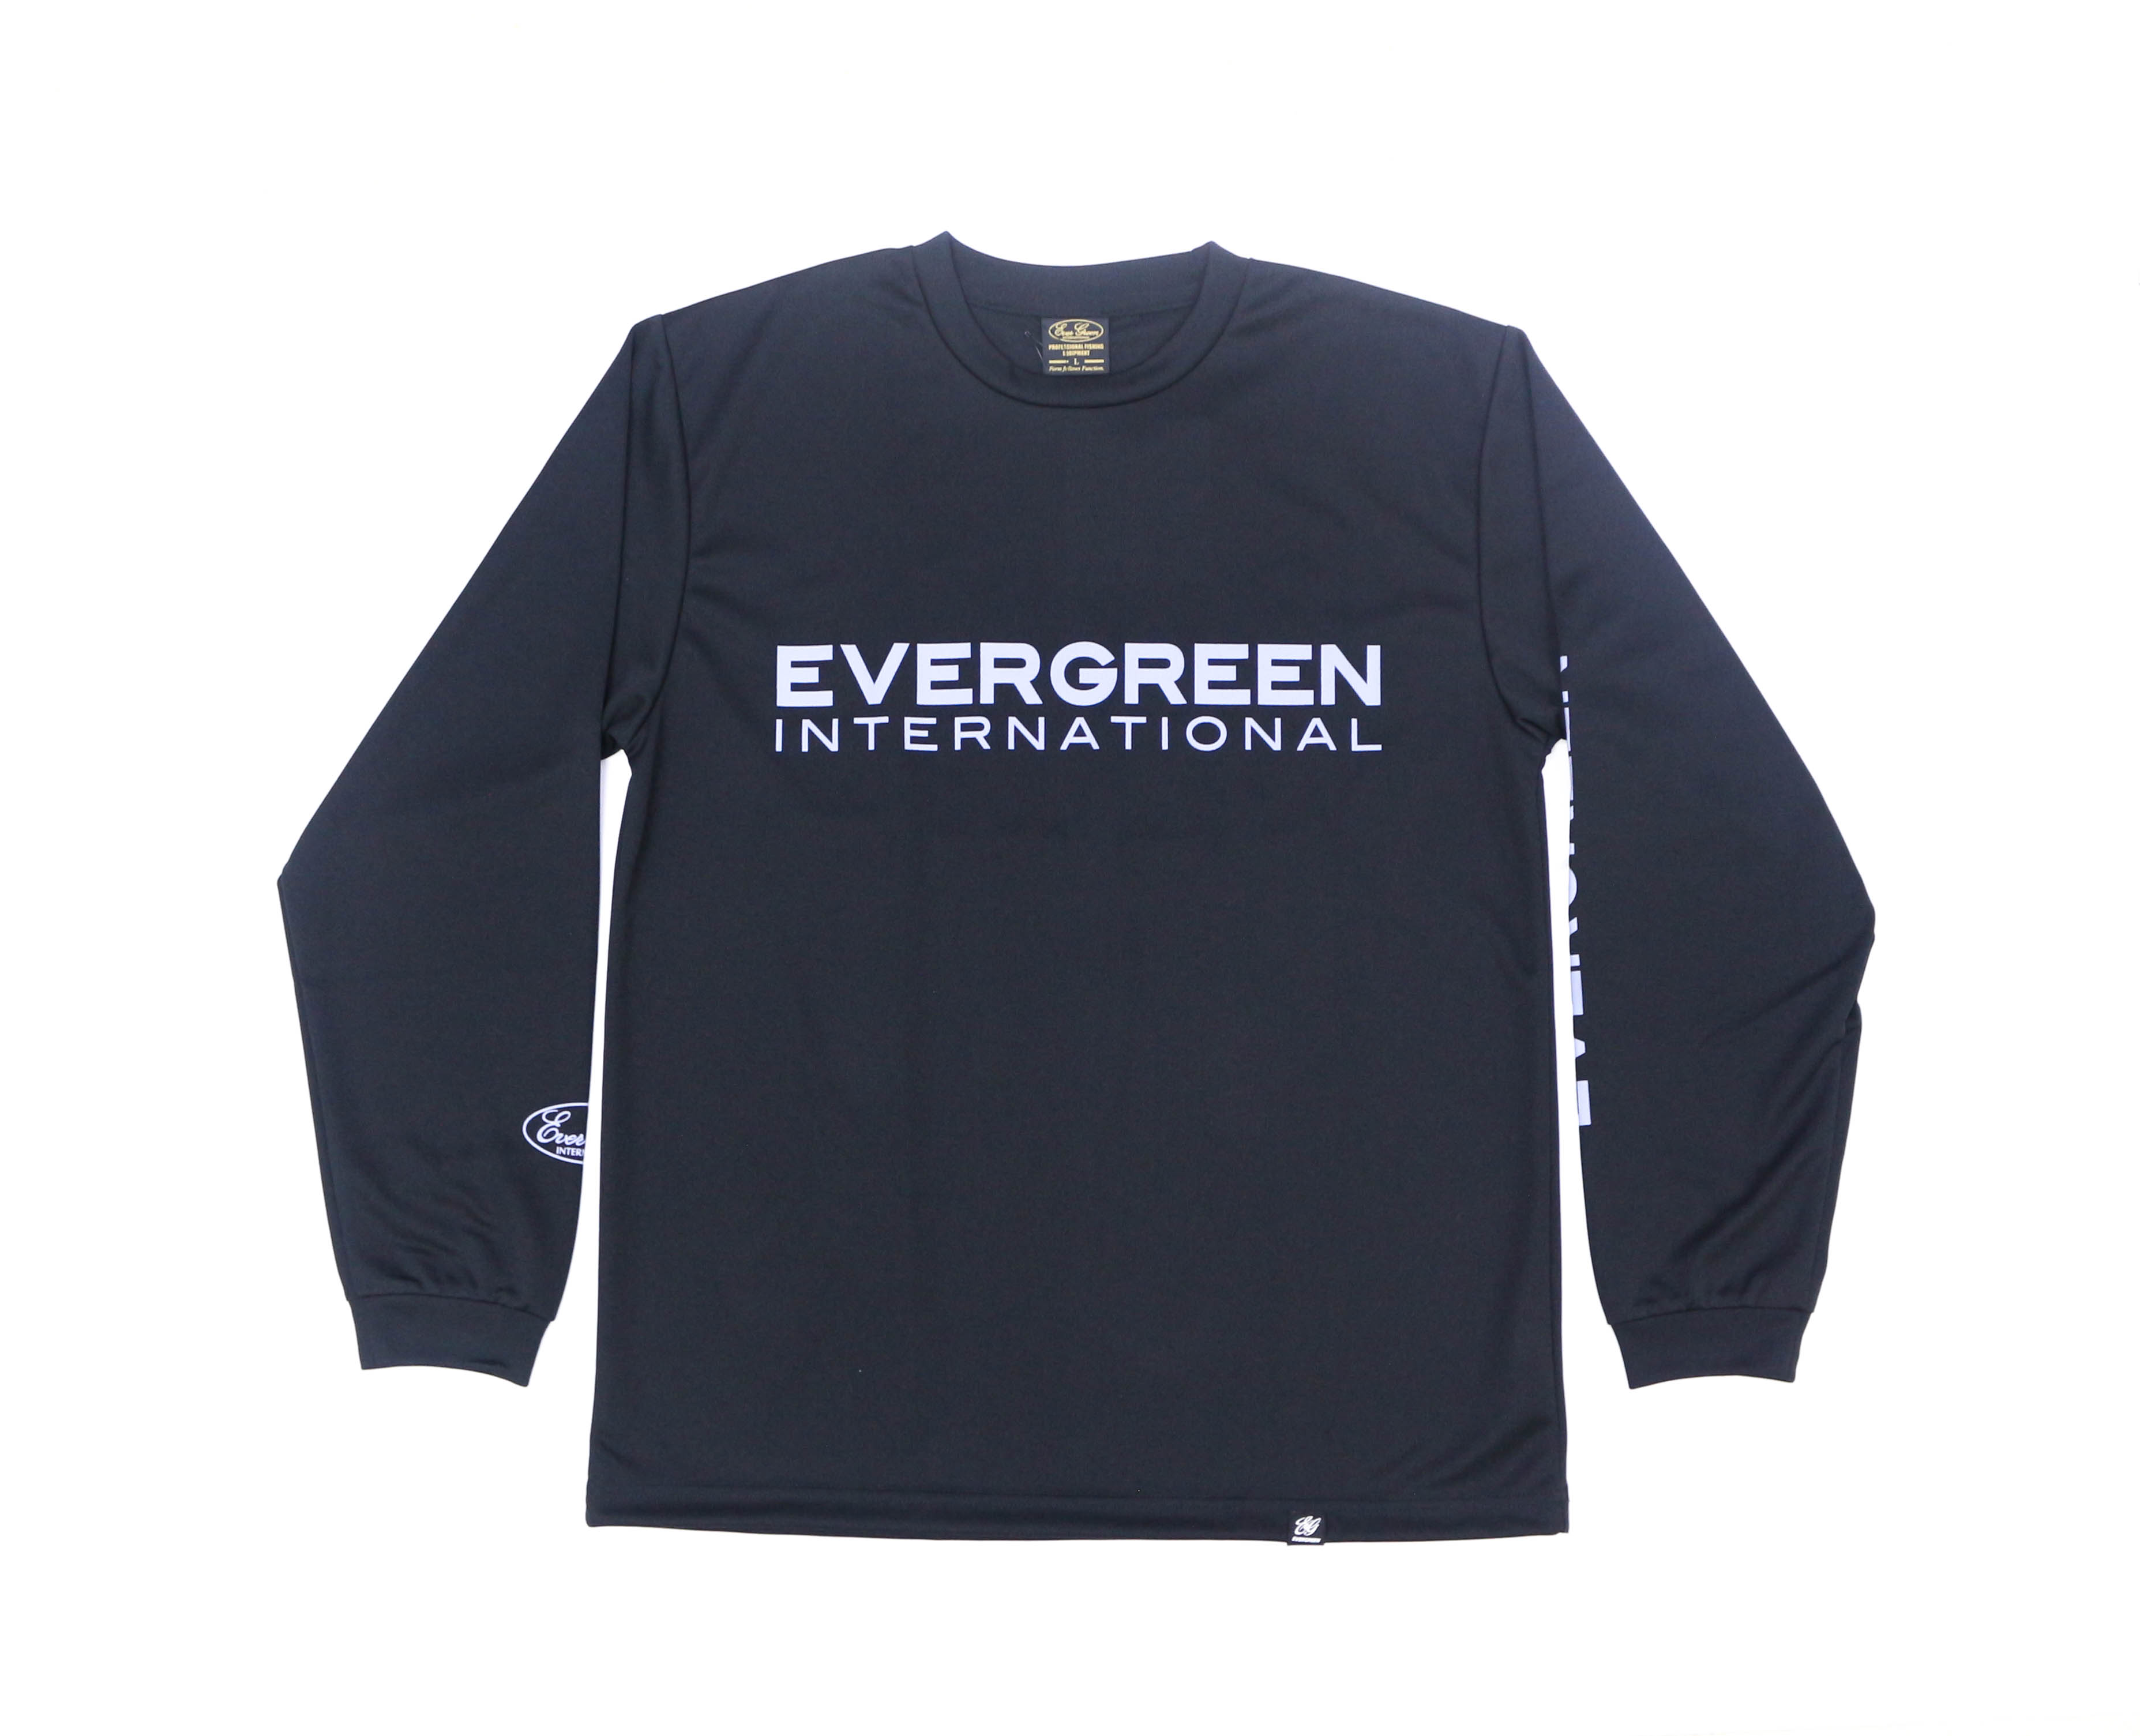 Evergreen T-Shirt Dry Fit Long Sleeve D Type Size XL Black (0929)